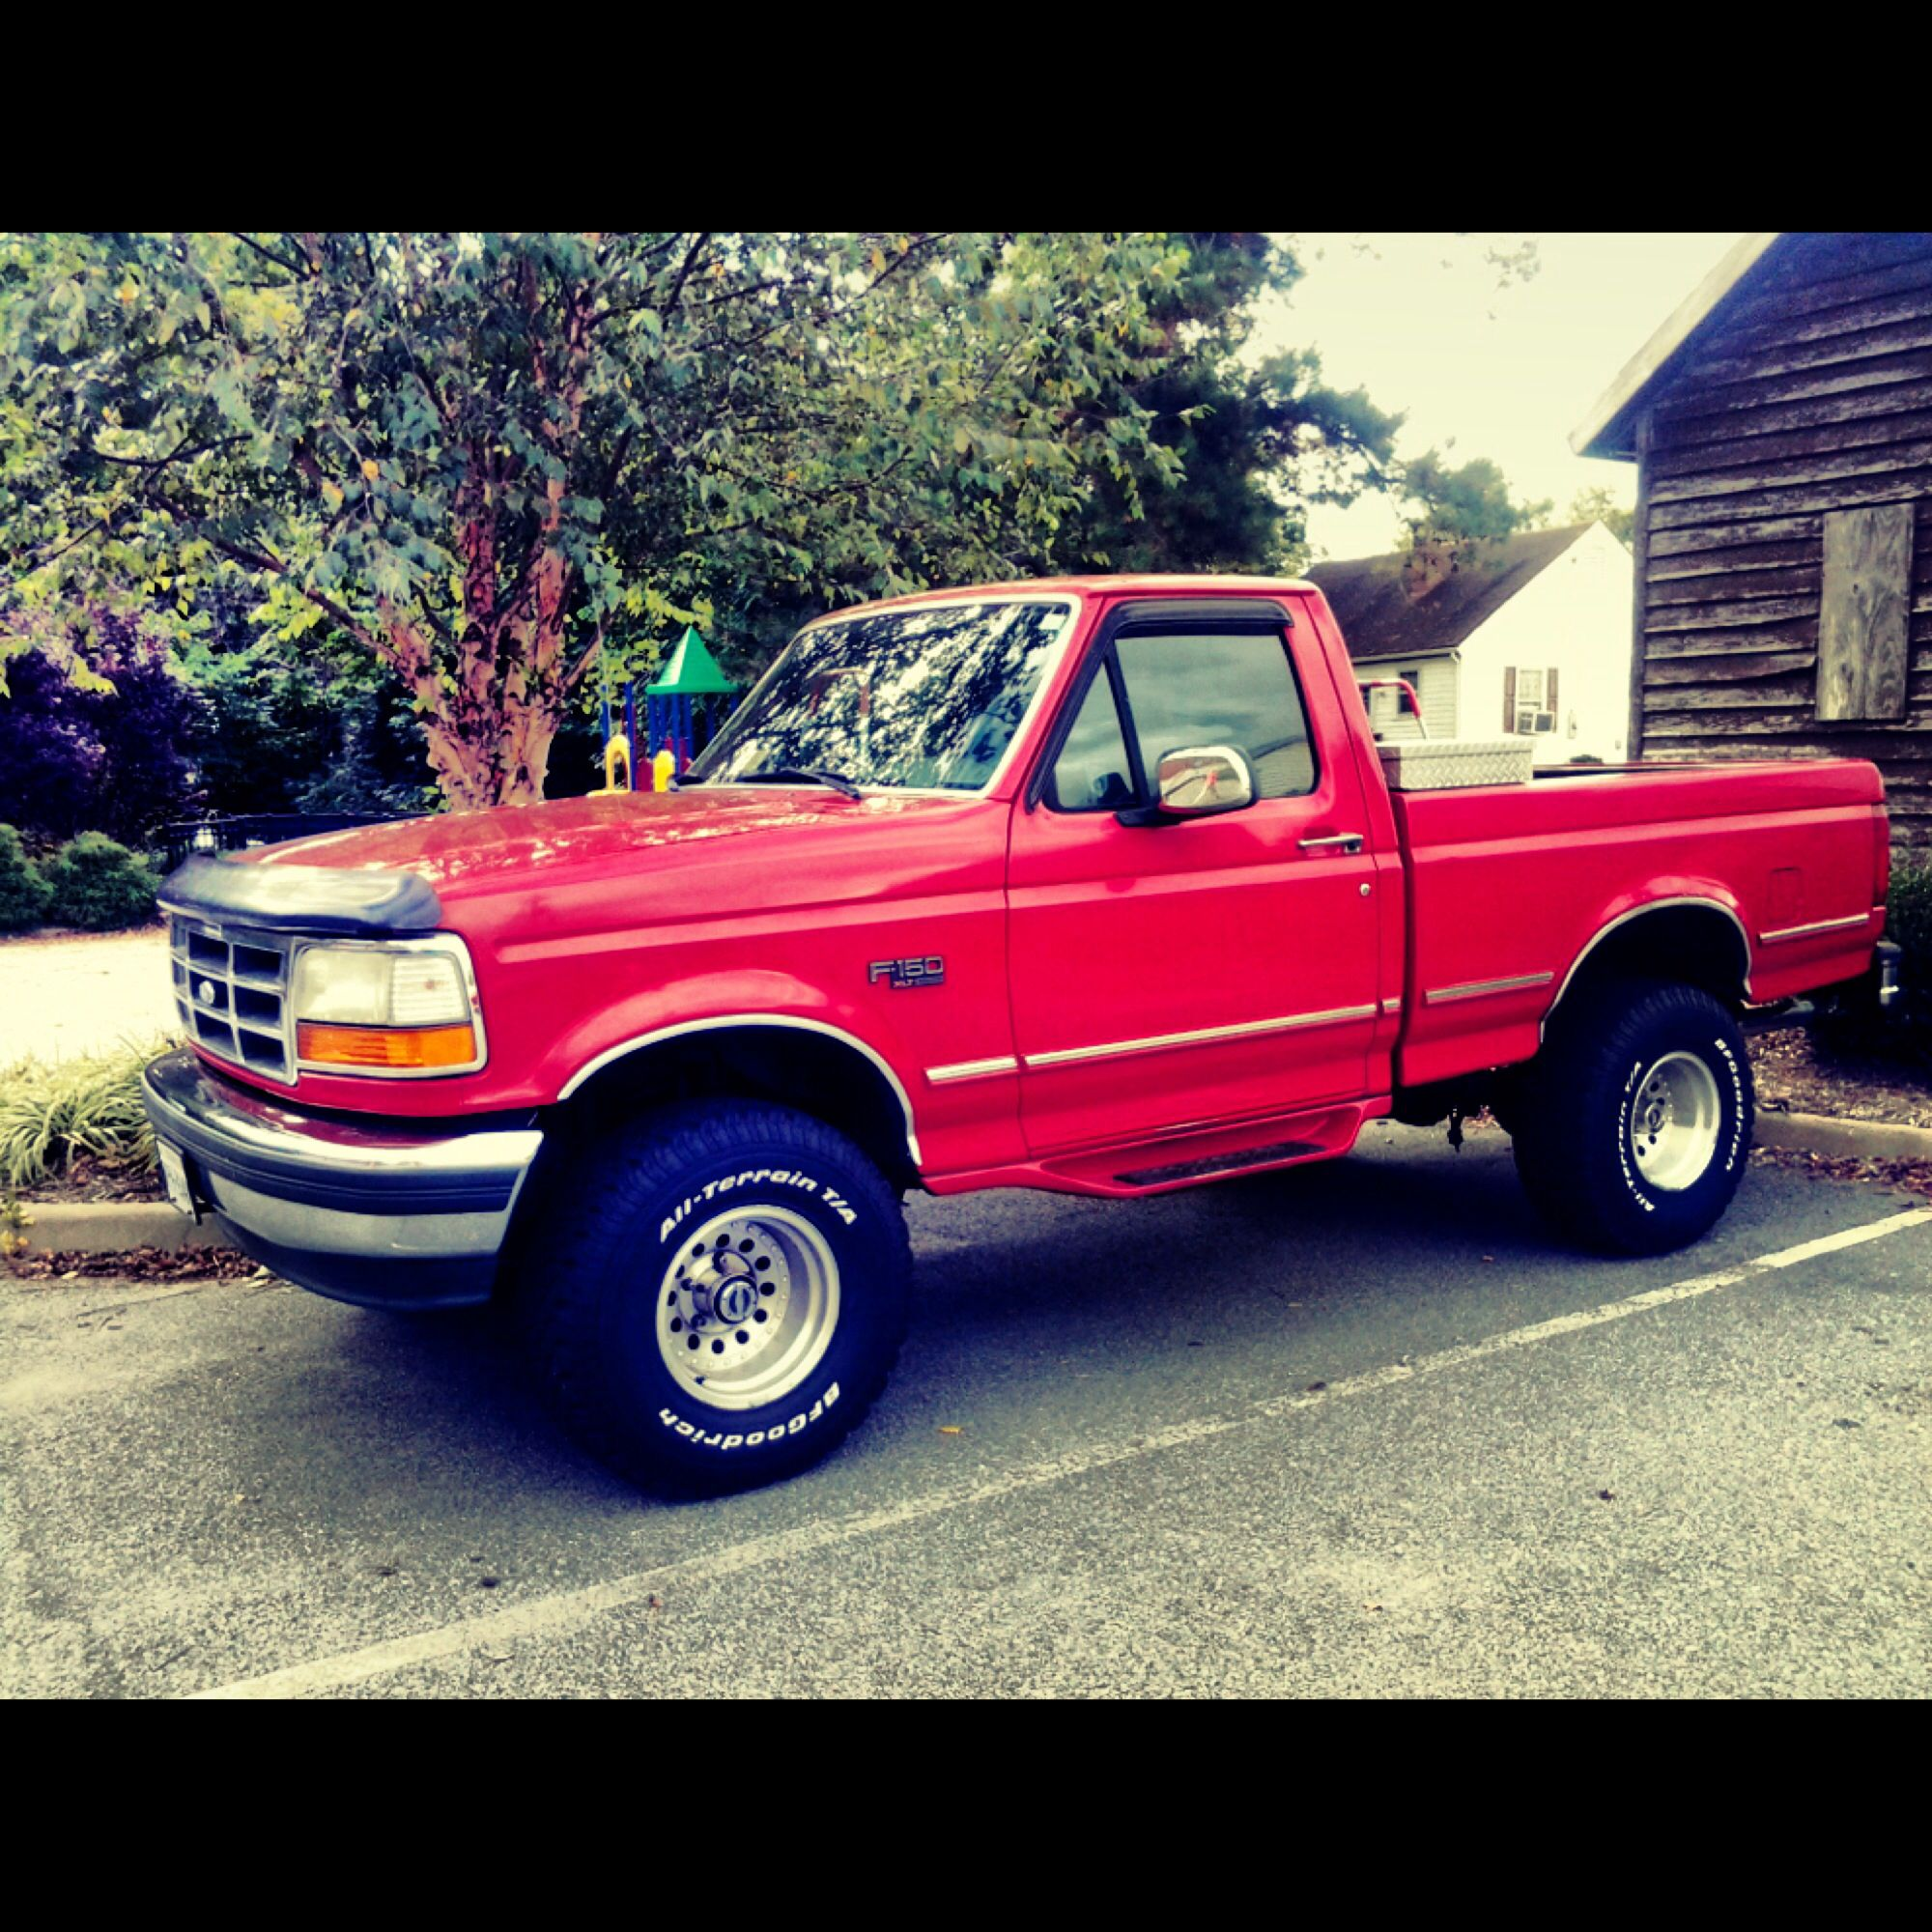 medium resolution of my baby for life 1995 ford f150 4x4 on 33s